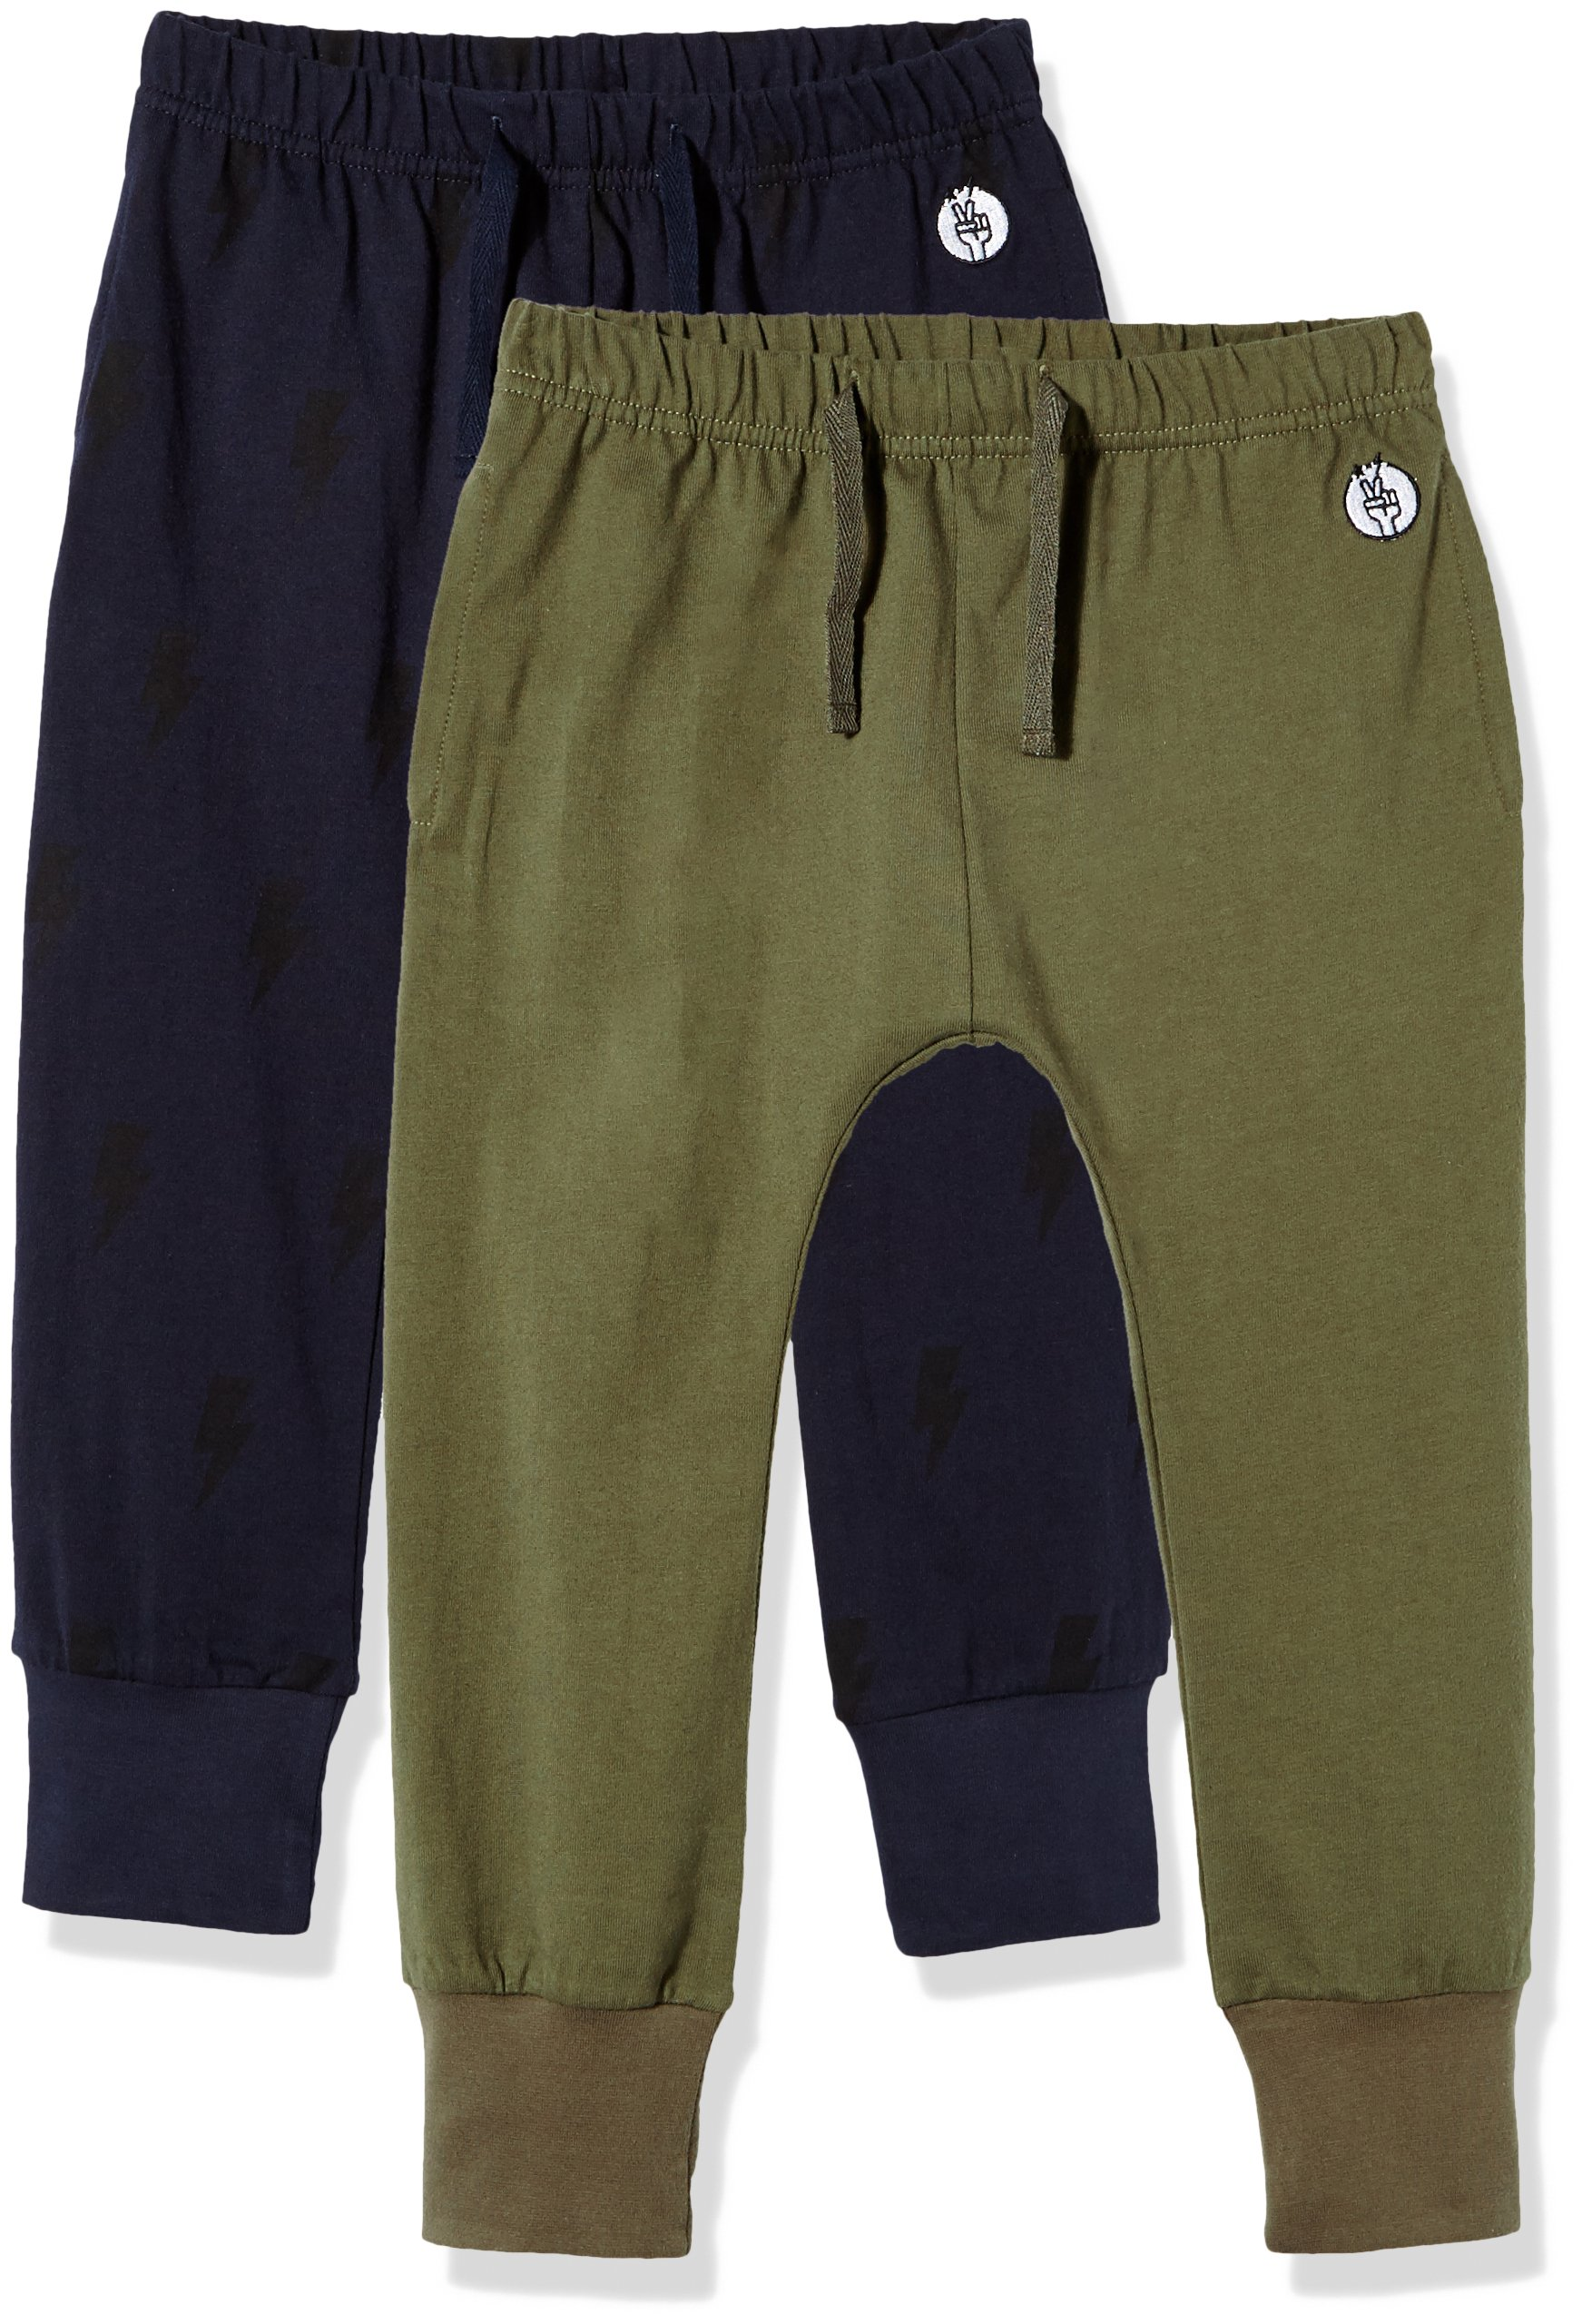 Kid Nation Kids' 2 Pack Cotton Beach Pant for Boys or Girls XS Olive + Grey Blue by Kid Nation (Image #1)